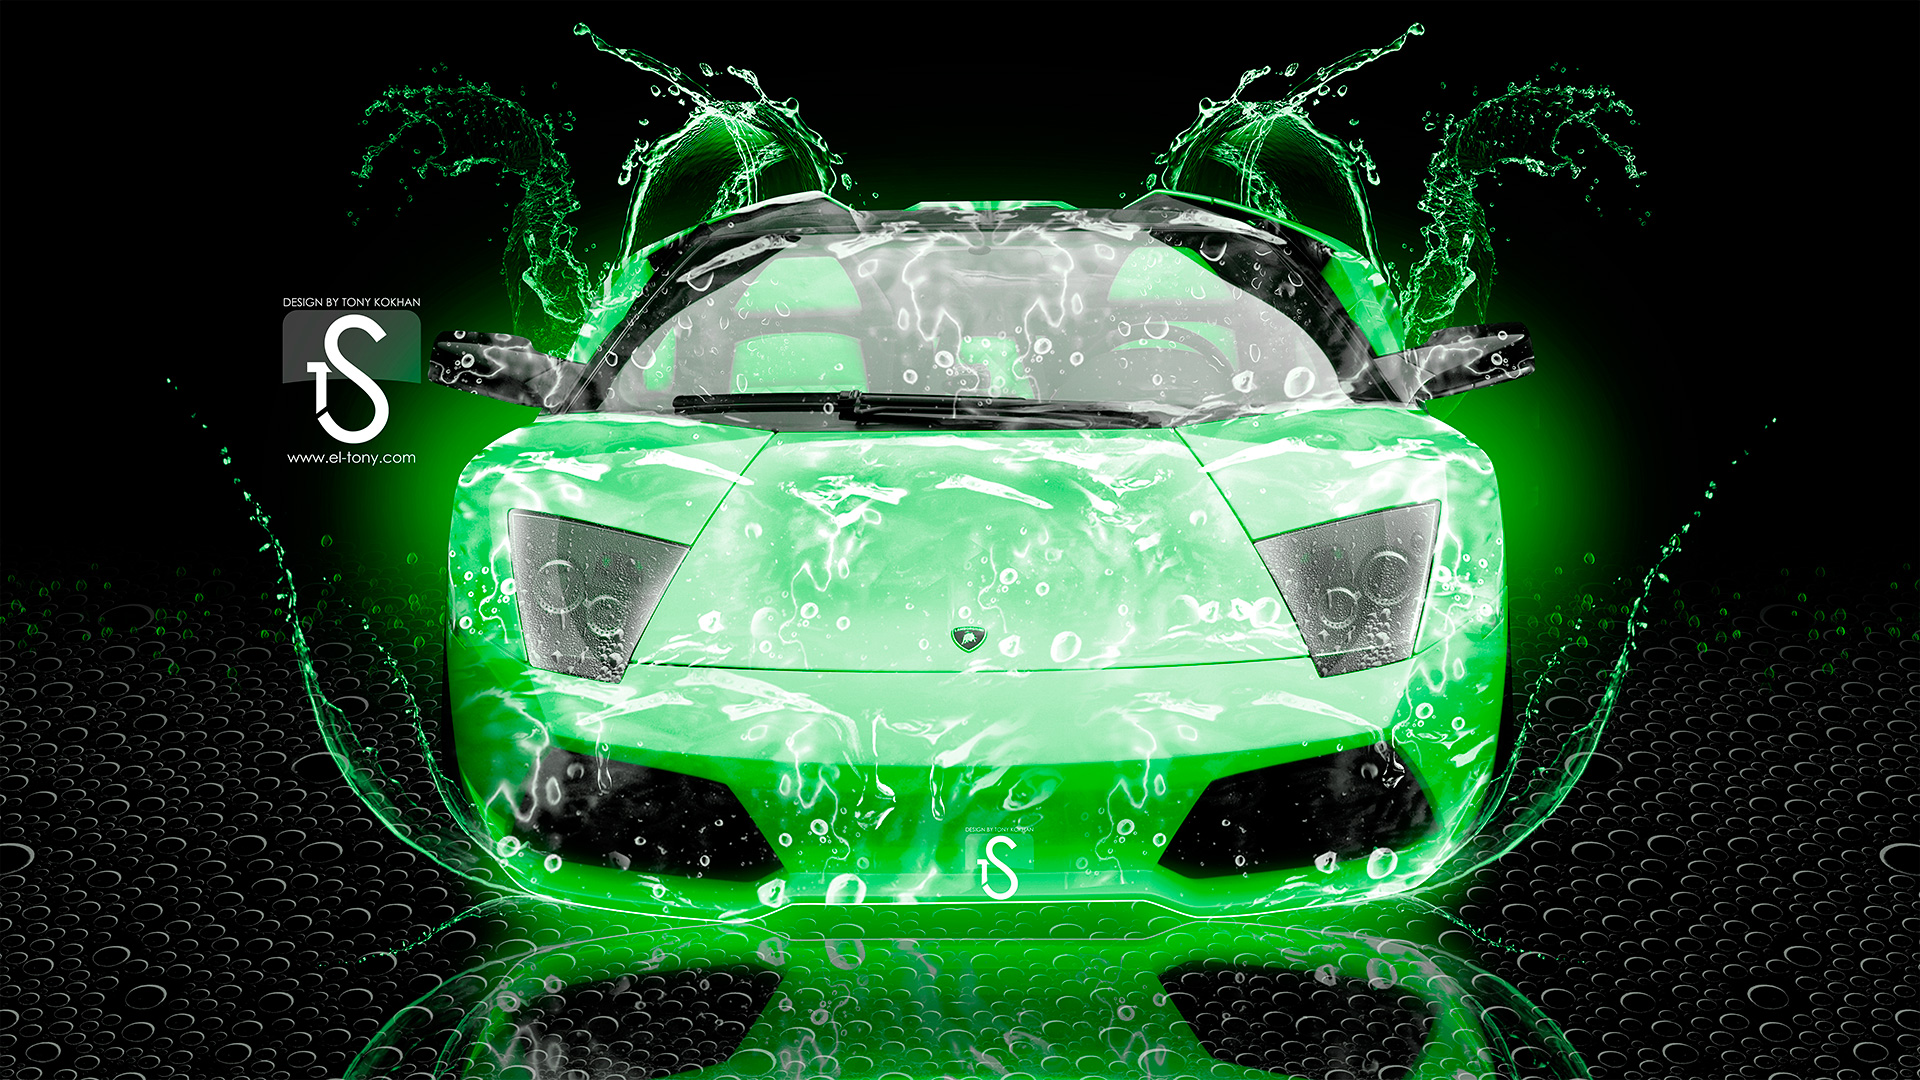 Lamborghini Murcielago Water Car 2013 El Tony